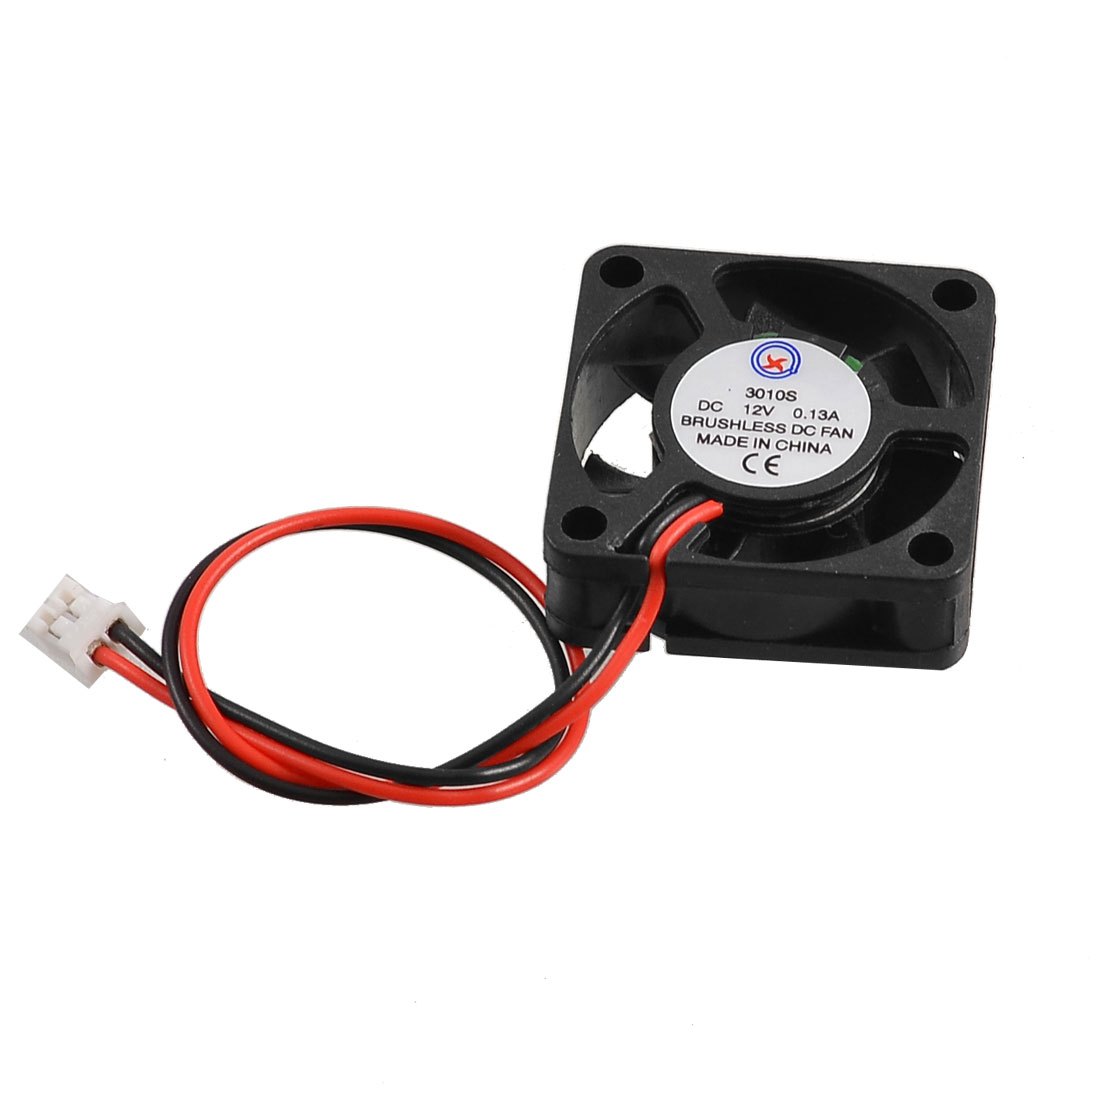 30mm x 30mm x 10mm 3010S 12V 0.13A Brushless DC Cooling Fan